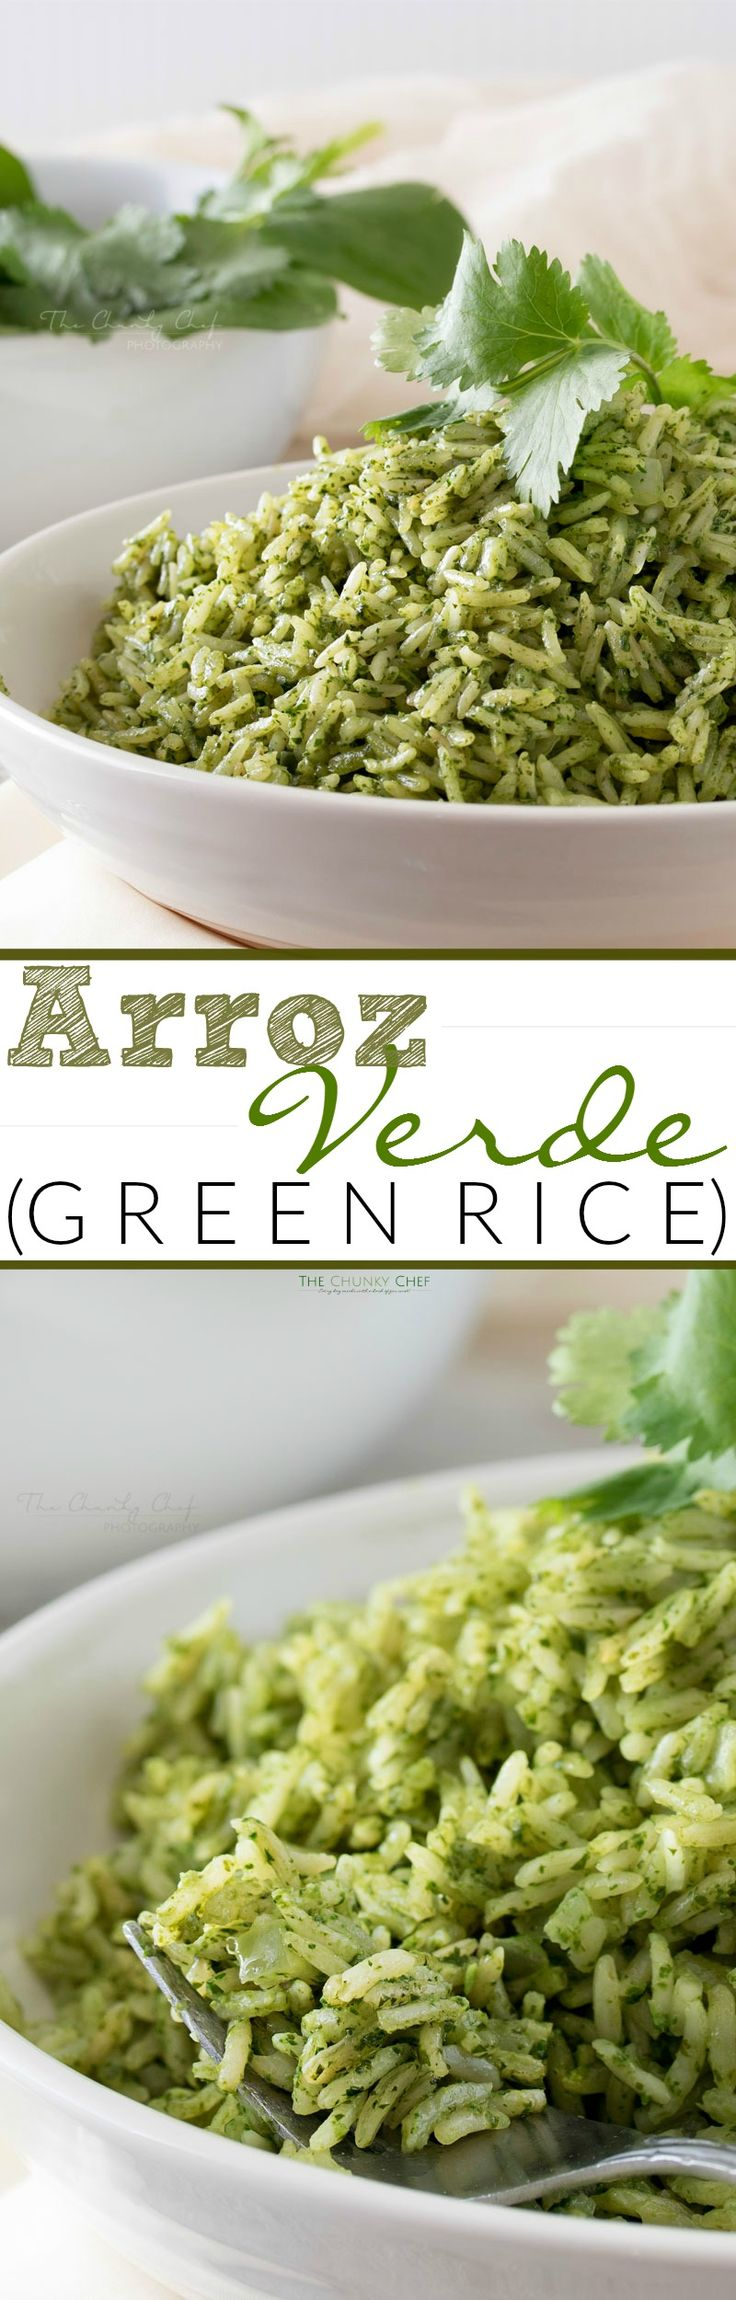 Arroz Verde Green Rice | So full of flavor, and you've just got to come see what gives it it's bright green color! | thechunkychef.com